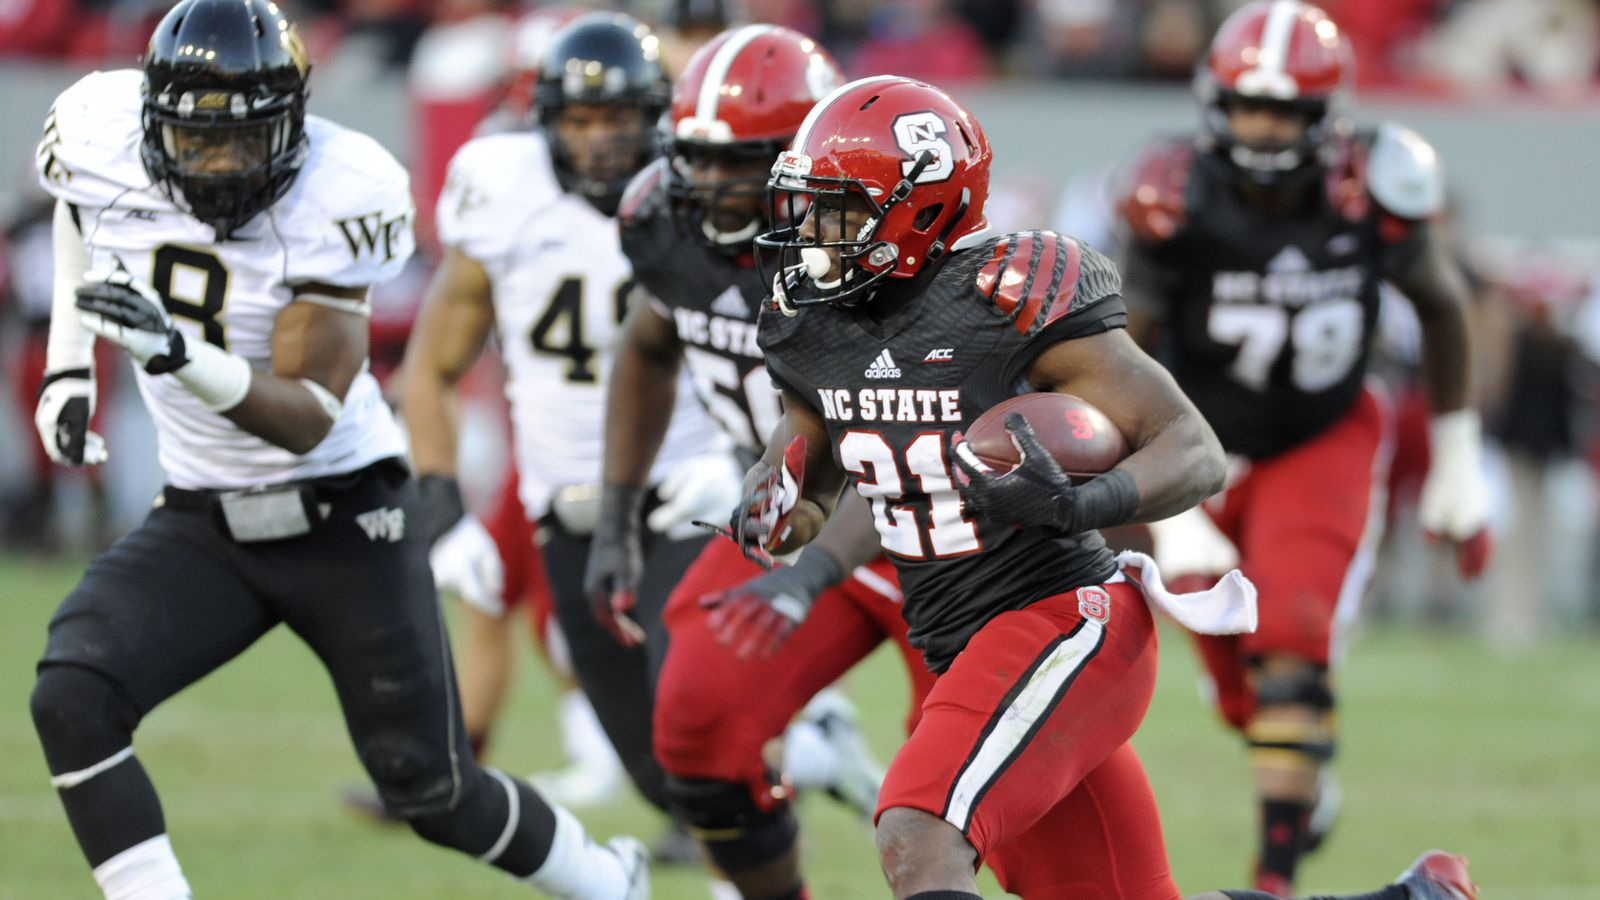 acc bowl projections Stewart mandel's college football bowl projections for all 40 games.